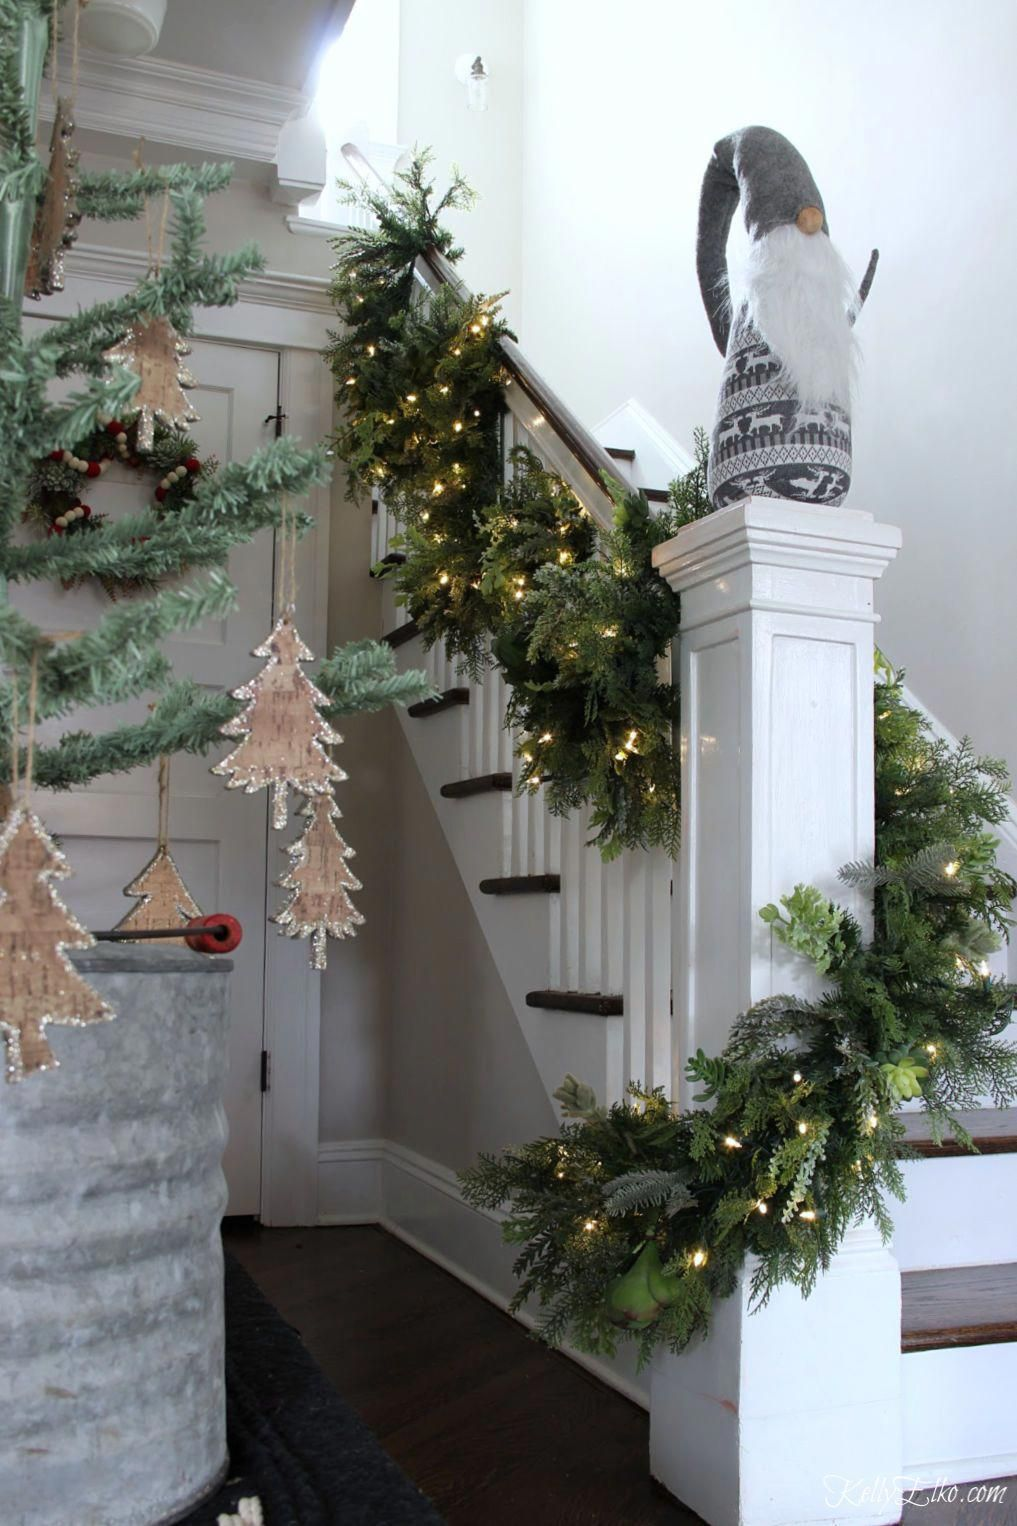 Christmas Homecoming Ideas.Homemade Christmas Decorations Garland Christmas Homecoming